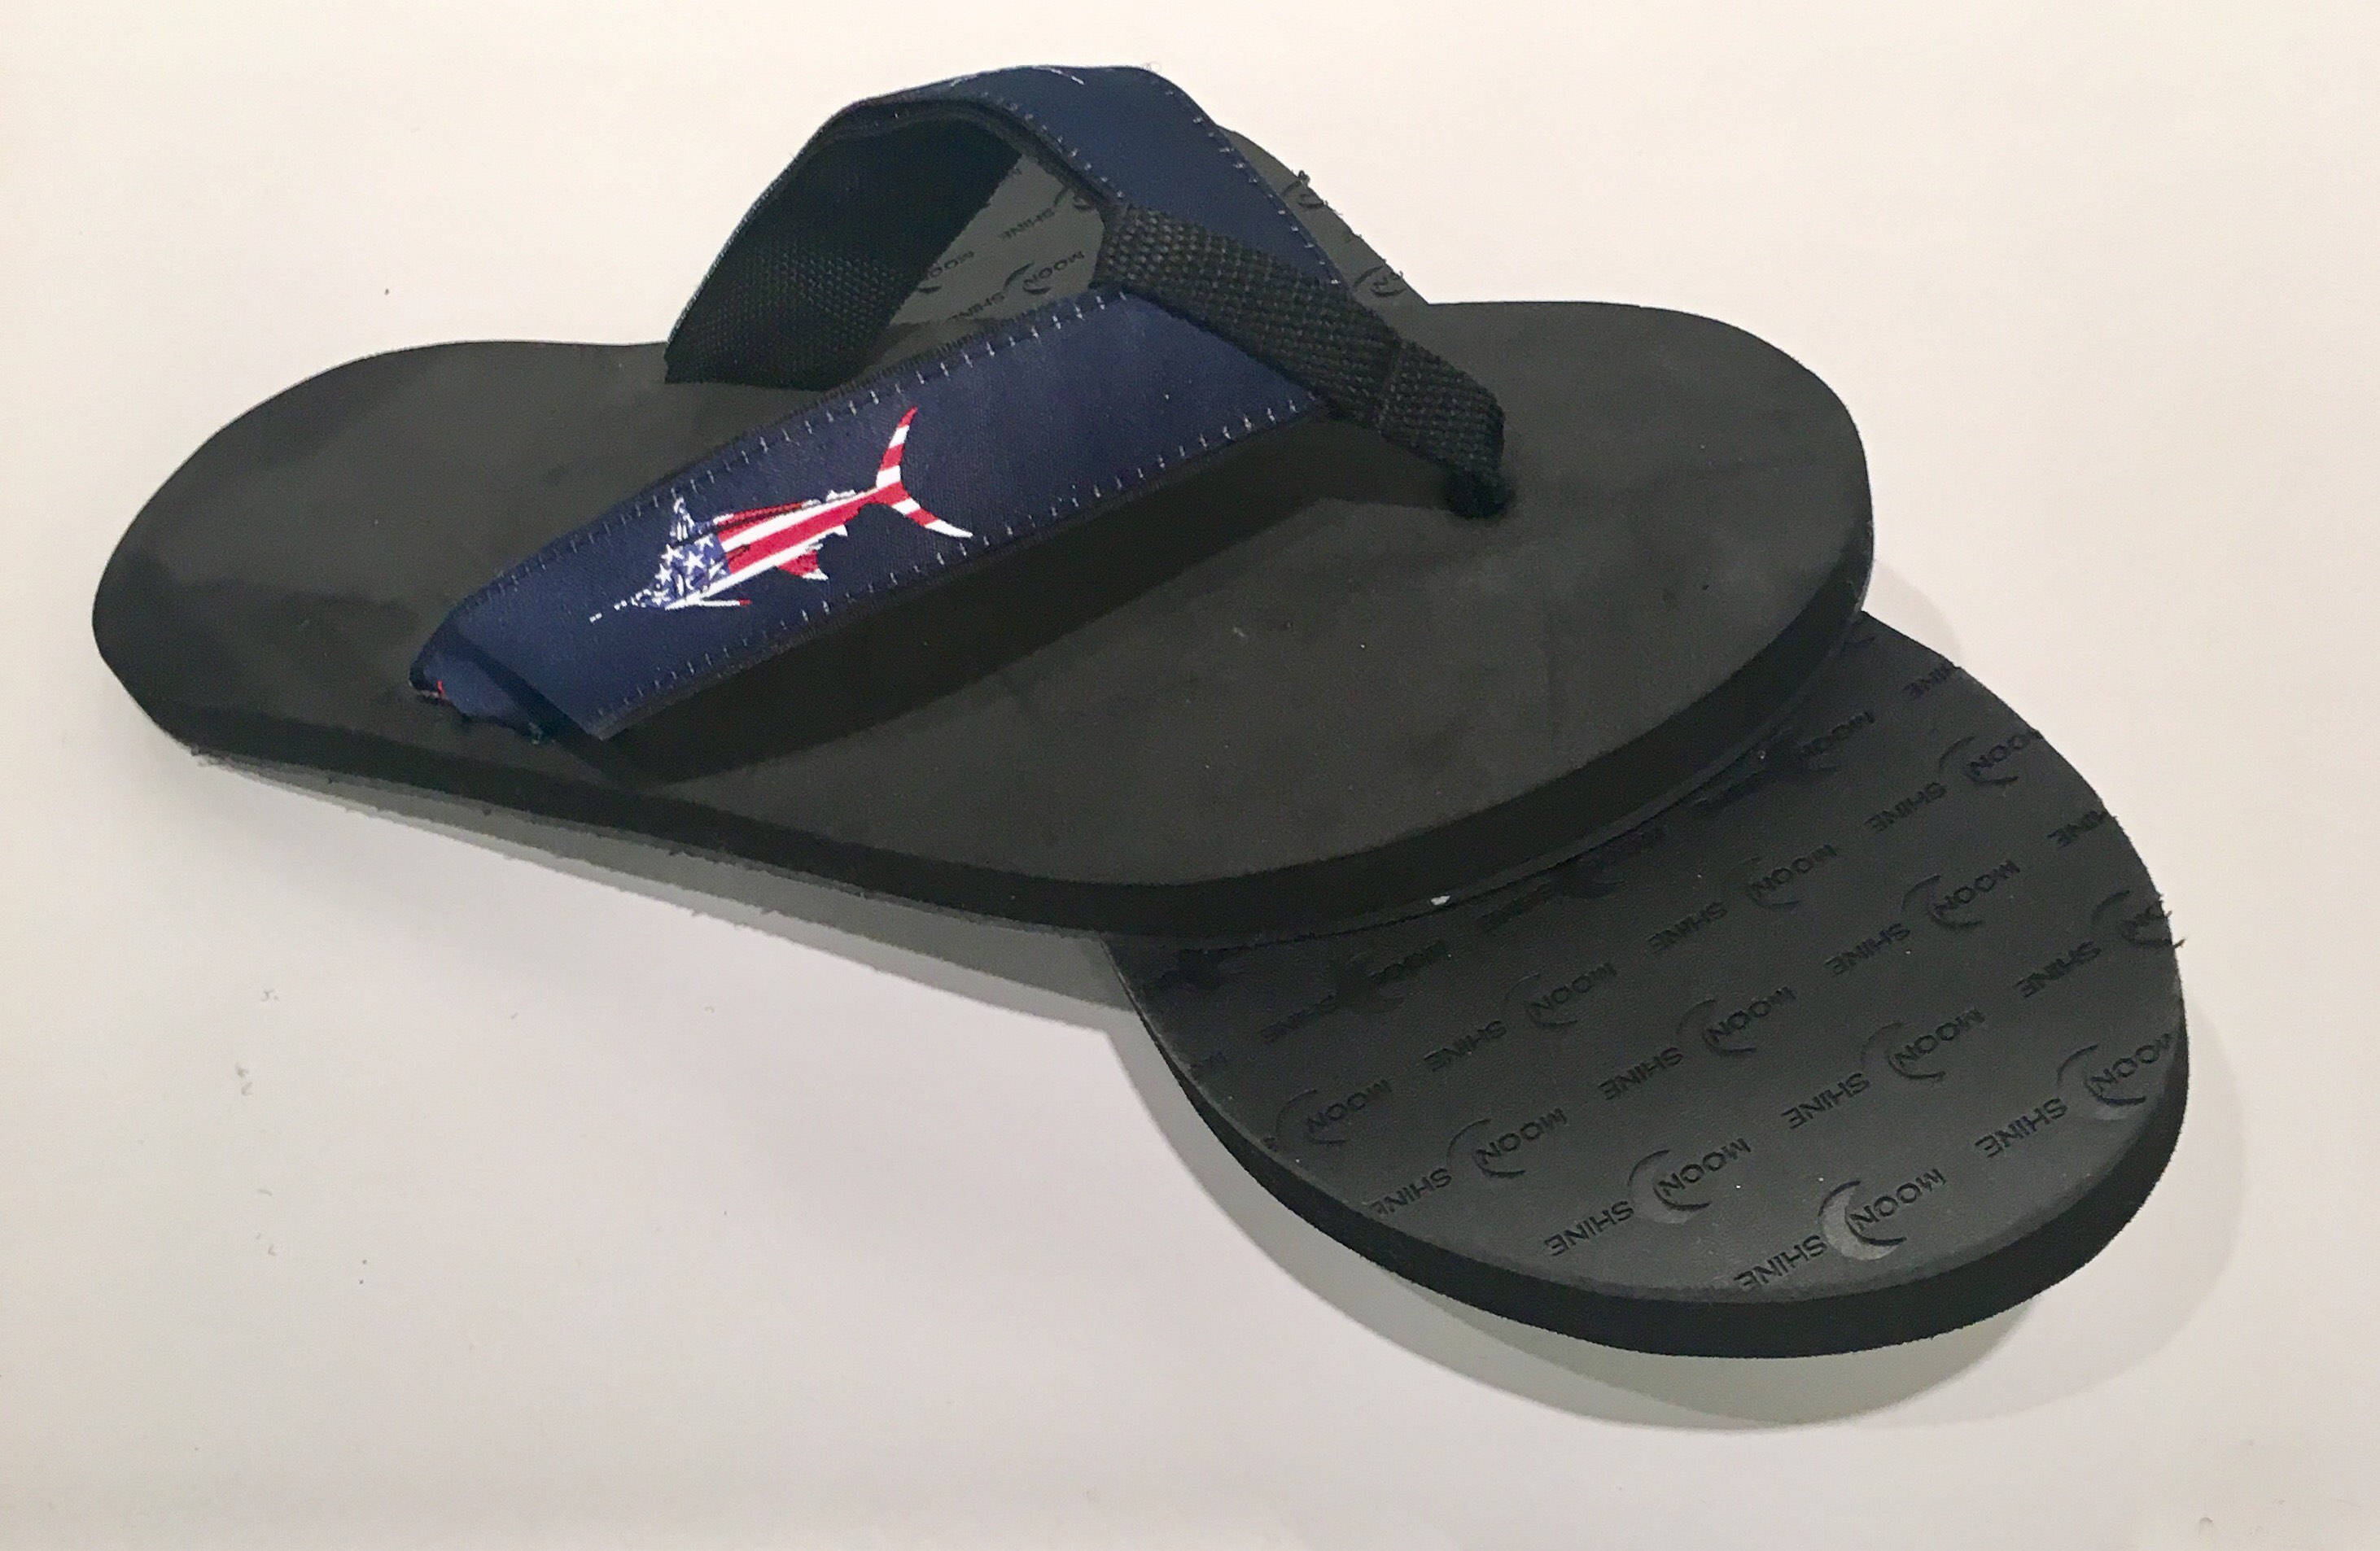 USA Marlin Flip Flops/Sandals